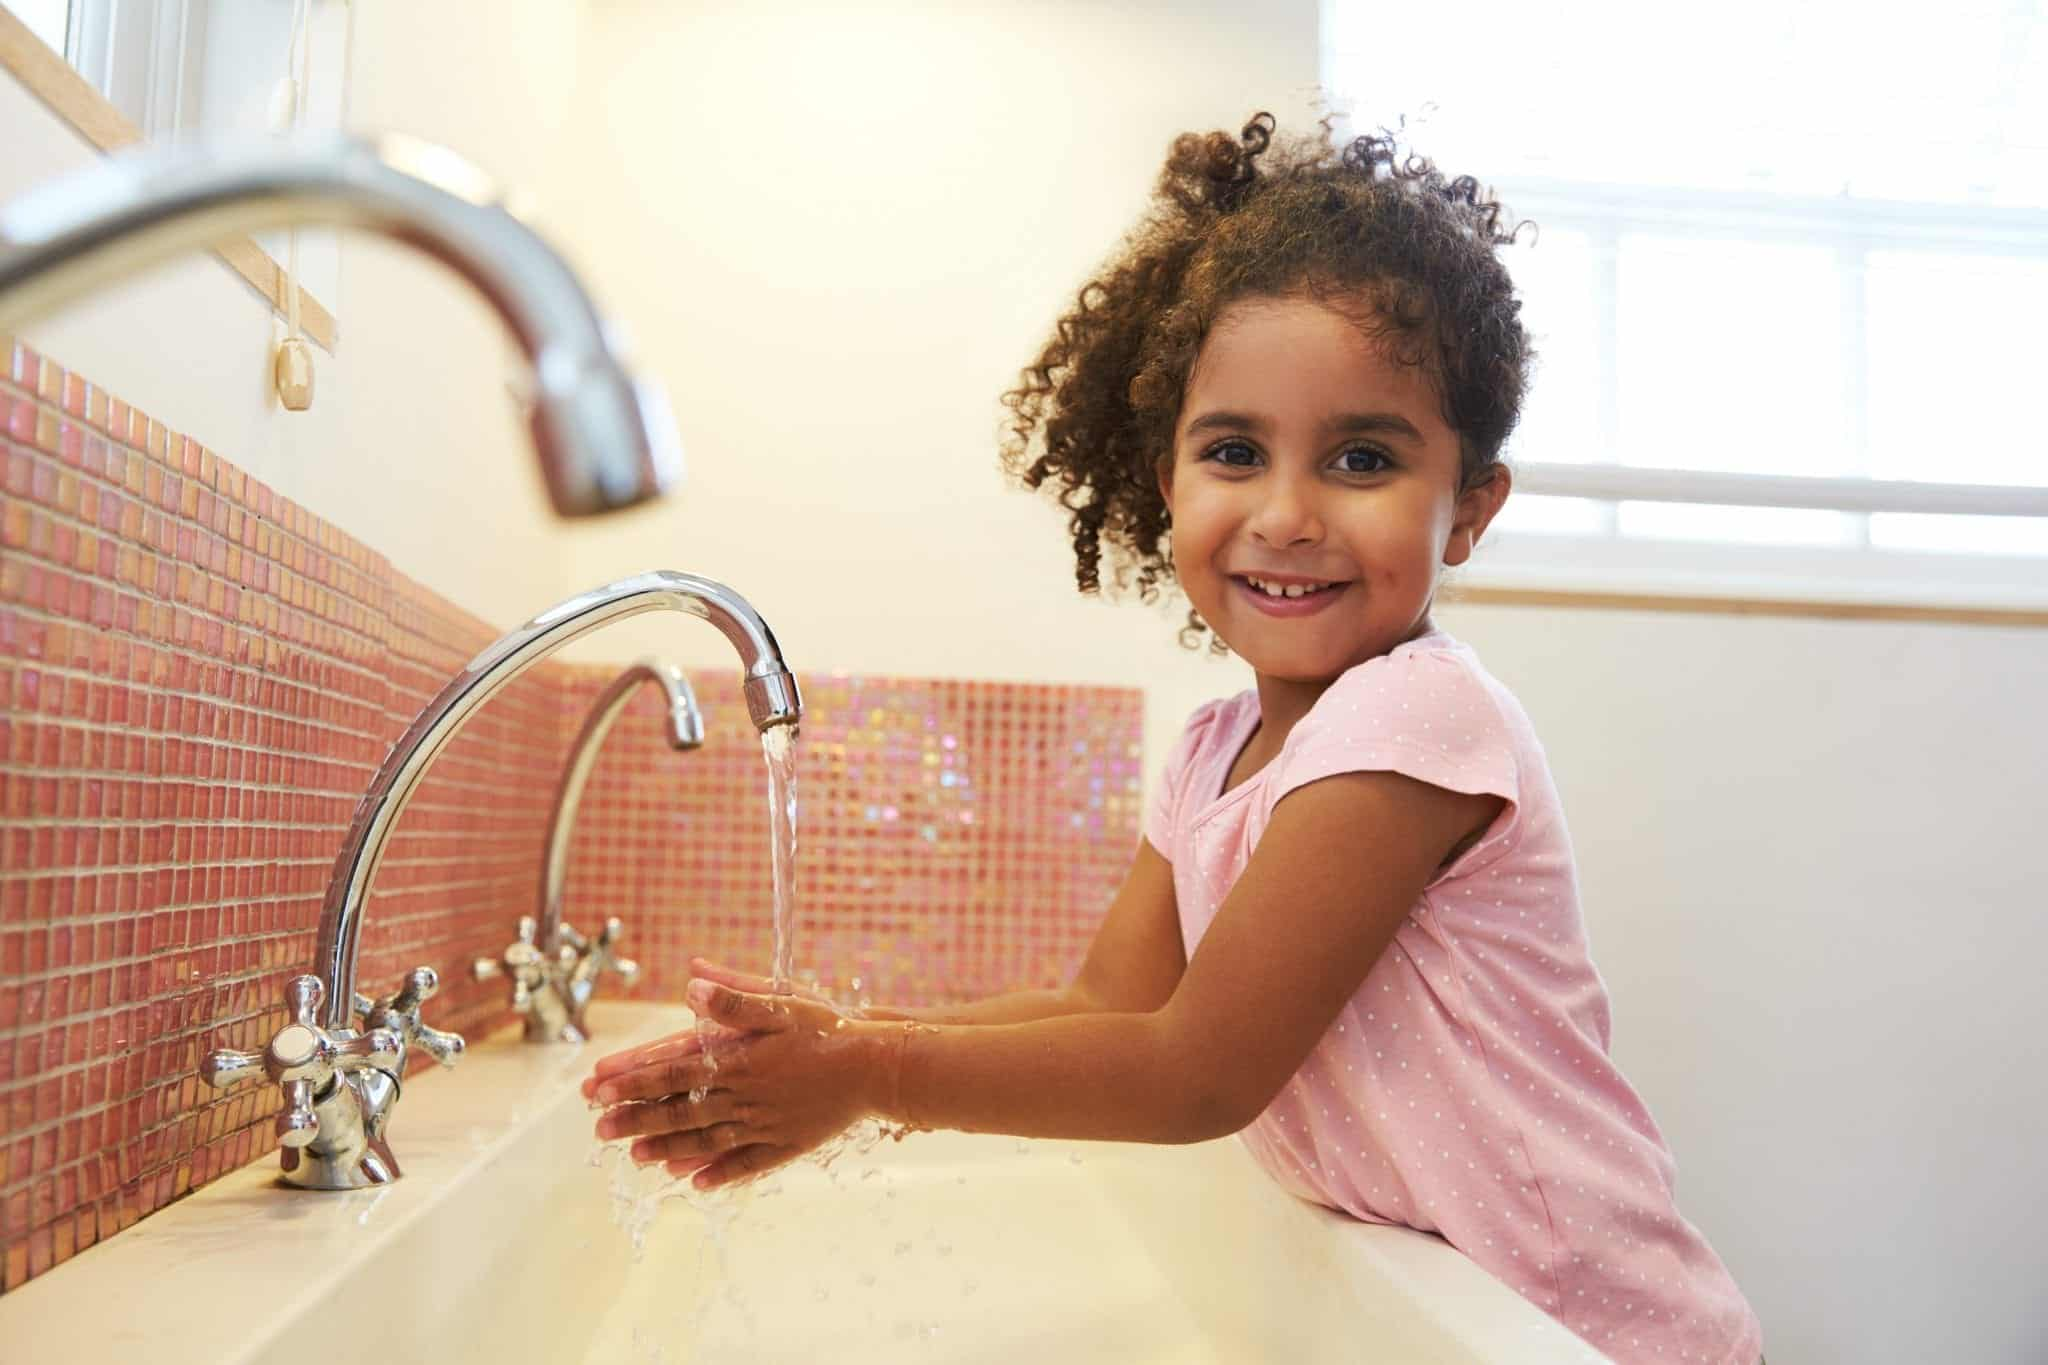 a girl washing her hands and smiling